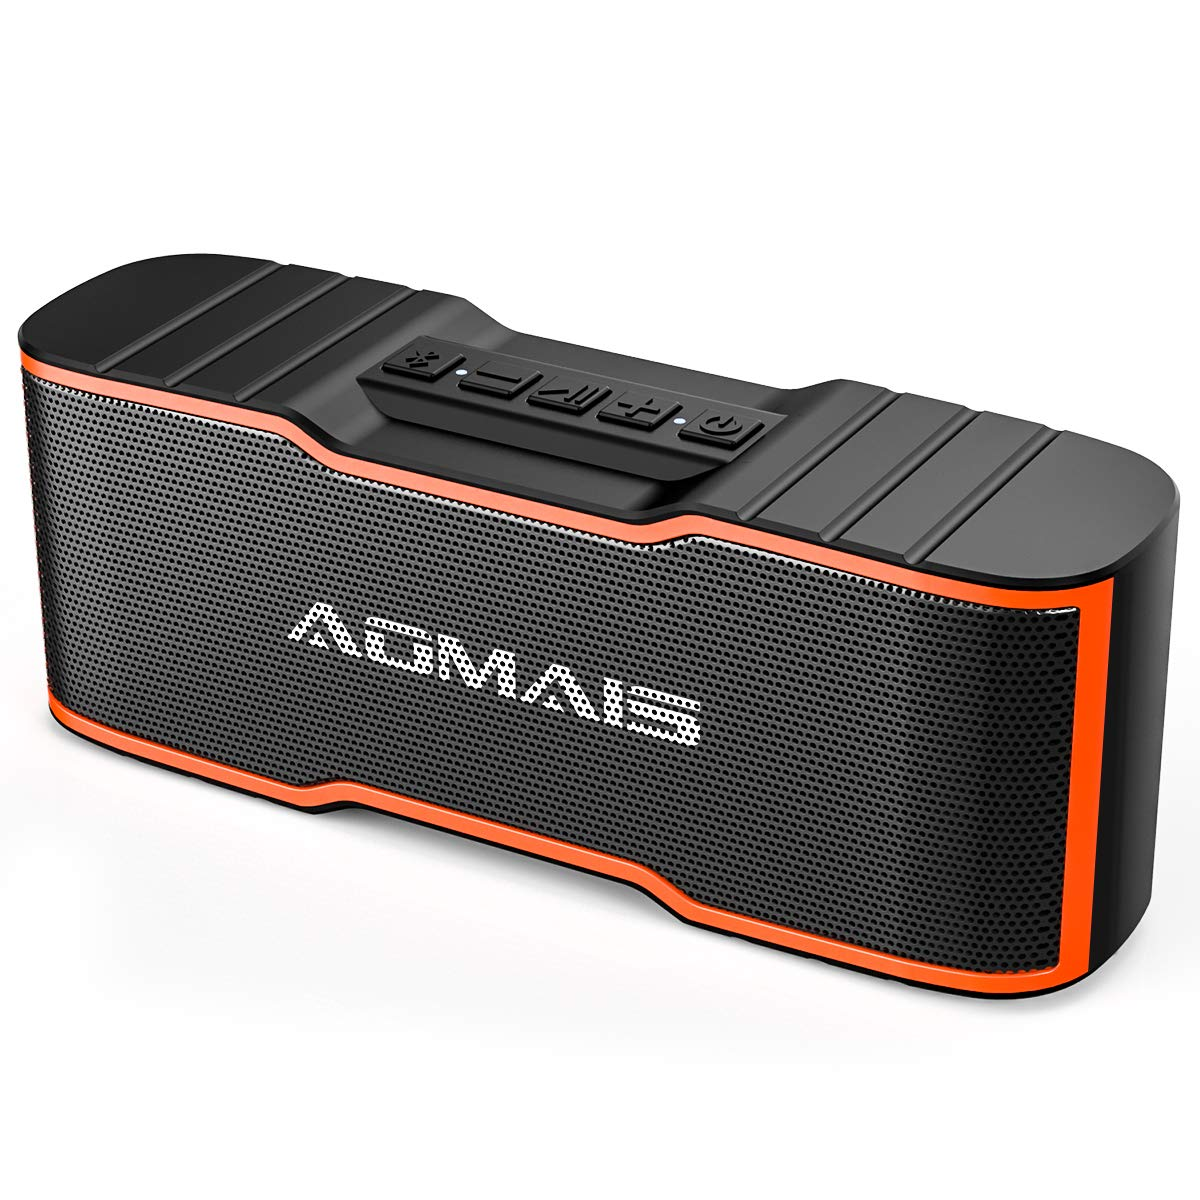 AOMAIS Sport II Mini Portable Bluetooth Speakers with 10W Superior Sound, Built-in Mic, Stereo Pairing, IPX4 Water-Resistant Wireless Speaker for Shower, Pool, Outdoors, Travel, Beach (Orange) AS-F2-MINI-Orange